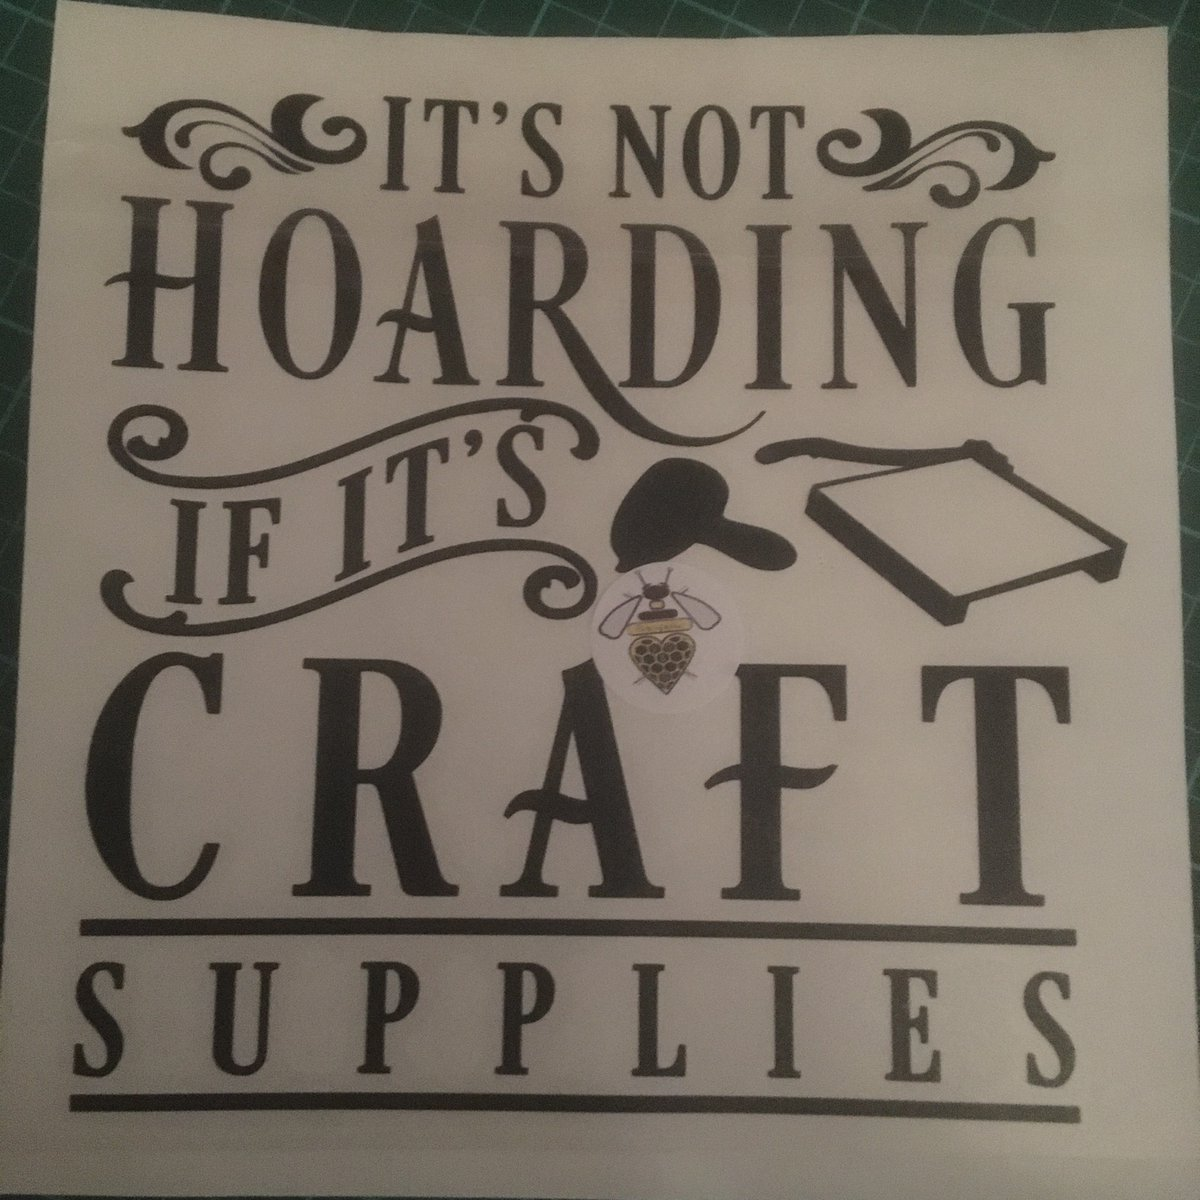 #newlisting  Suitable for all #crafts. Available to fit all box frame sizes. #availablenow  #crafts #humor #framework #homedecor #vinyldecal #order #qoutes #FYP #giftideas #forhim #forher #craft #materials #shoppingonline  https://t.co/vYec75eLeo https://t.co/FpDWnti9nK